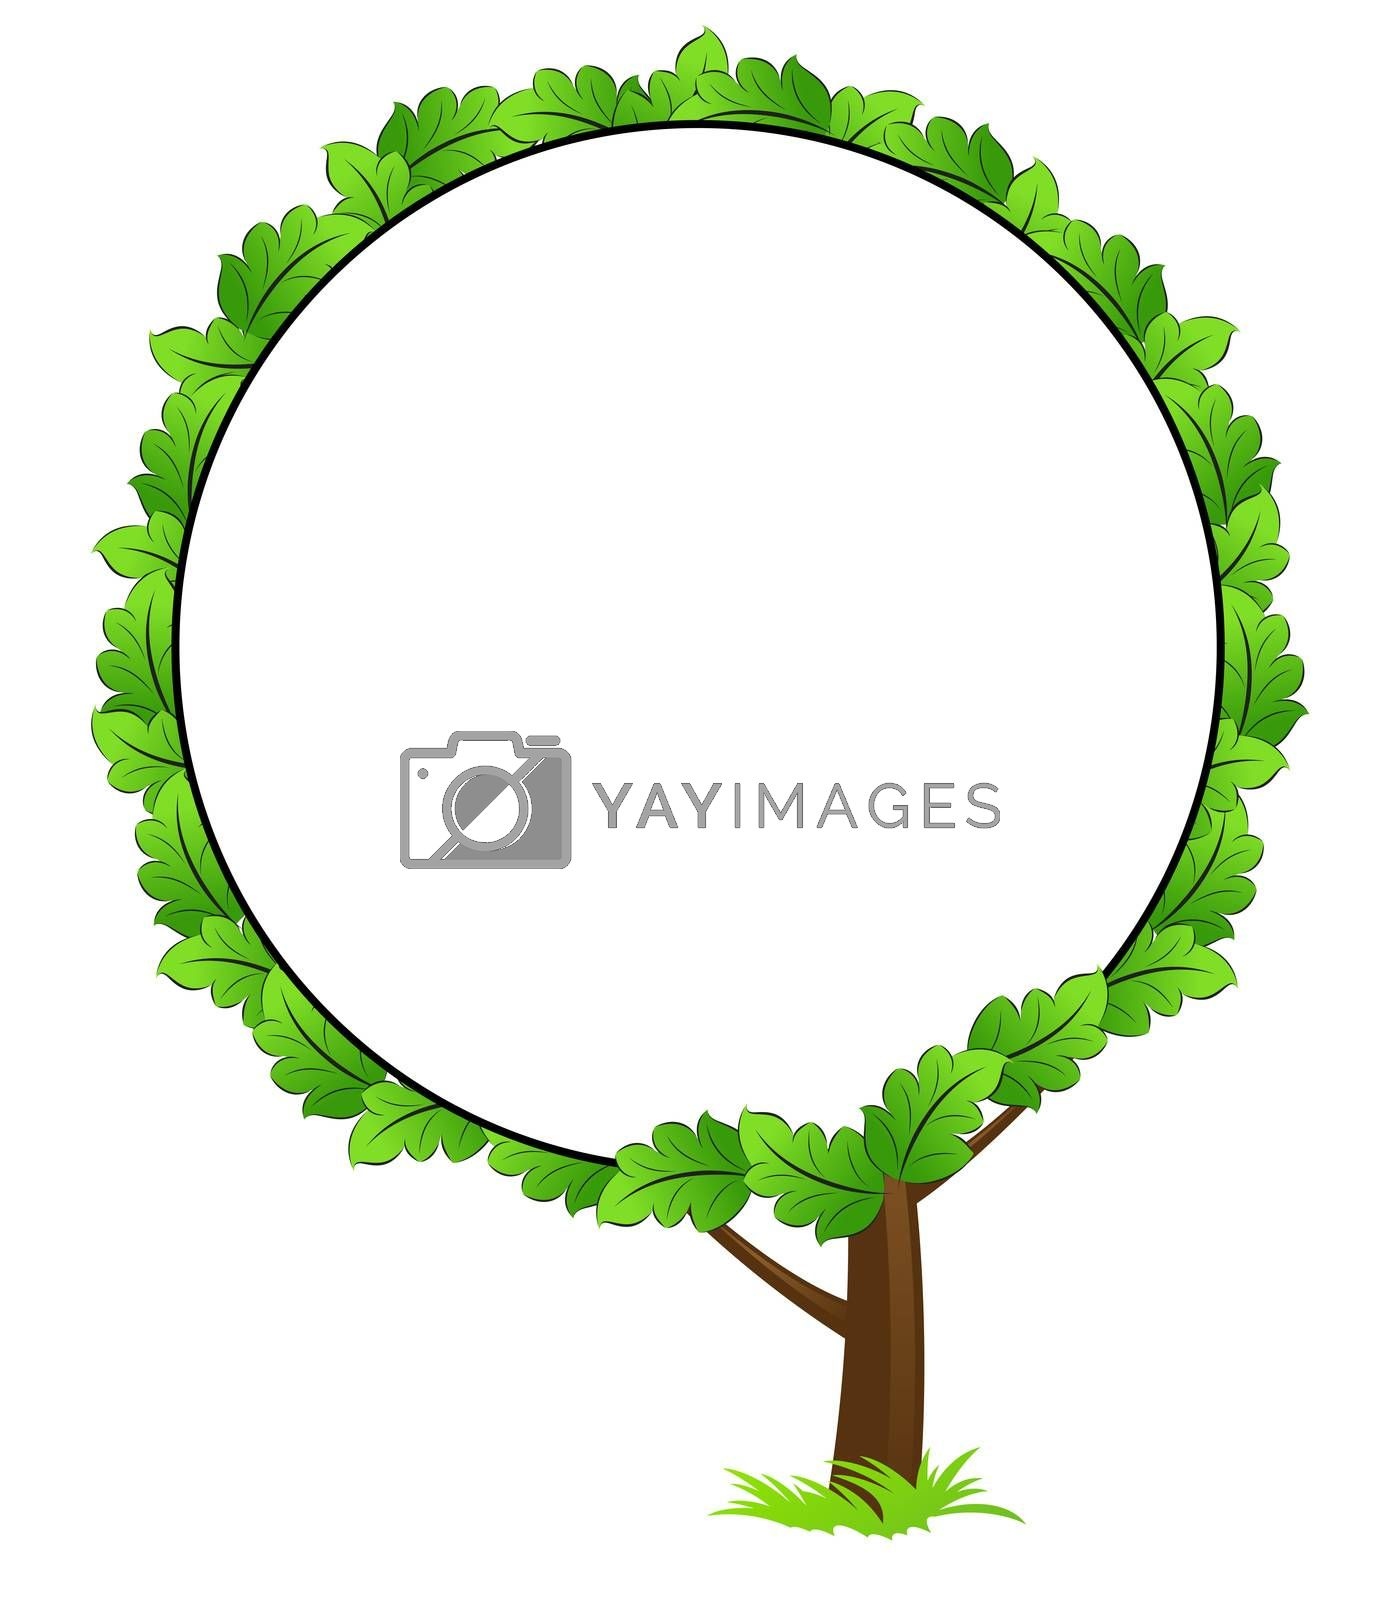 Blank tree frame icon by WaD